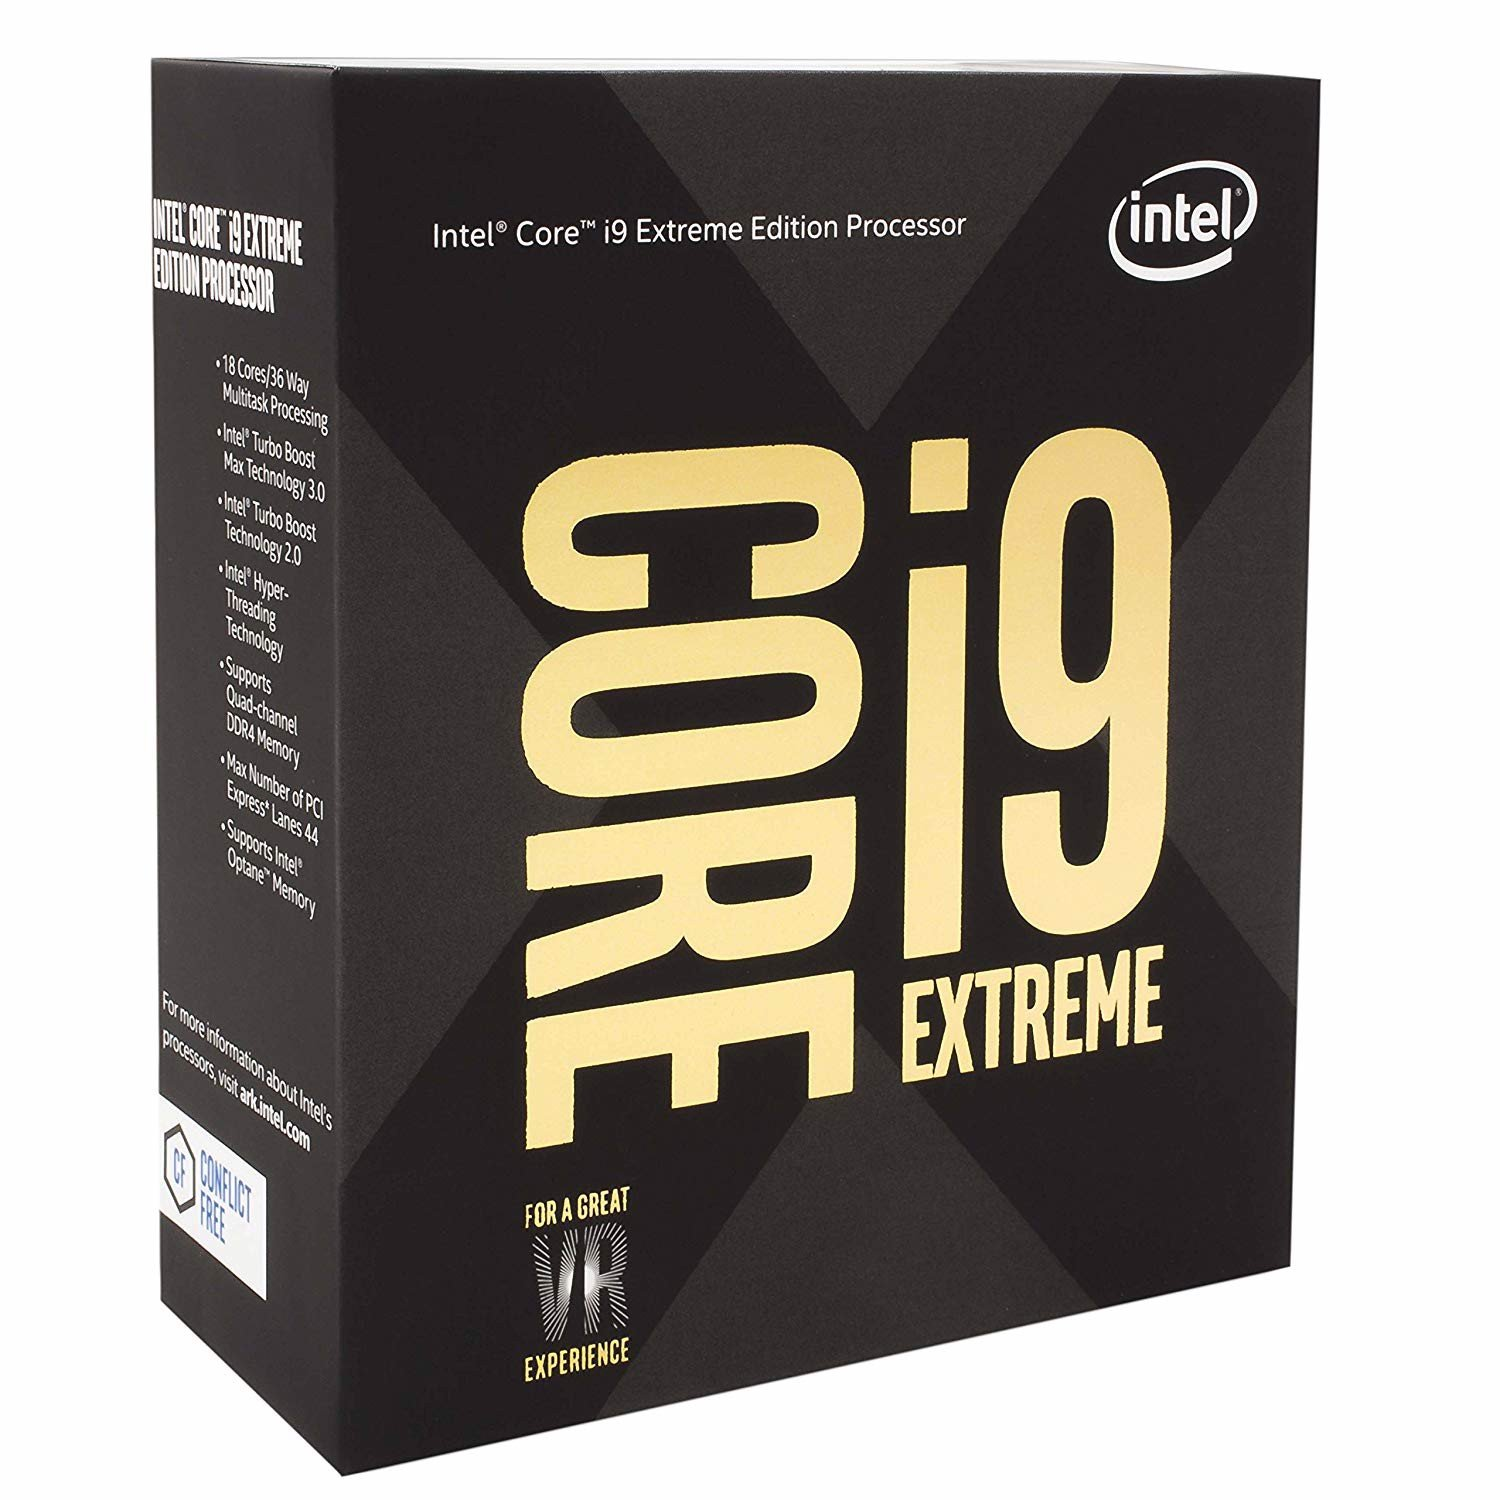 CPU Intel Core i9 7980X Skylake (2.60GHz)